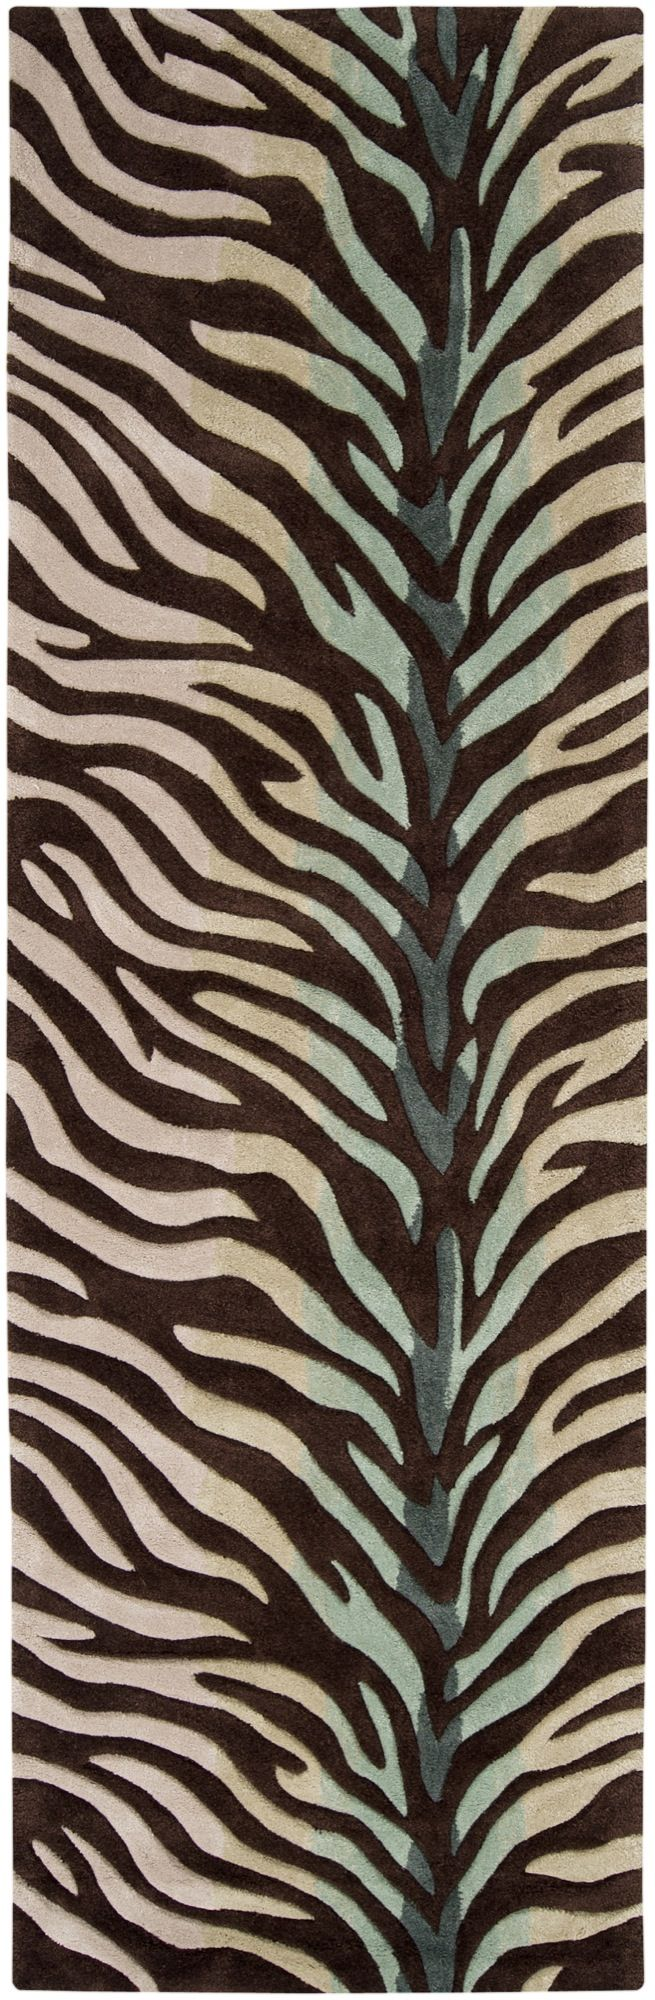 surya cosmopolitan animal inspirations area rug collection